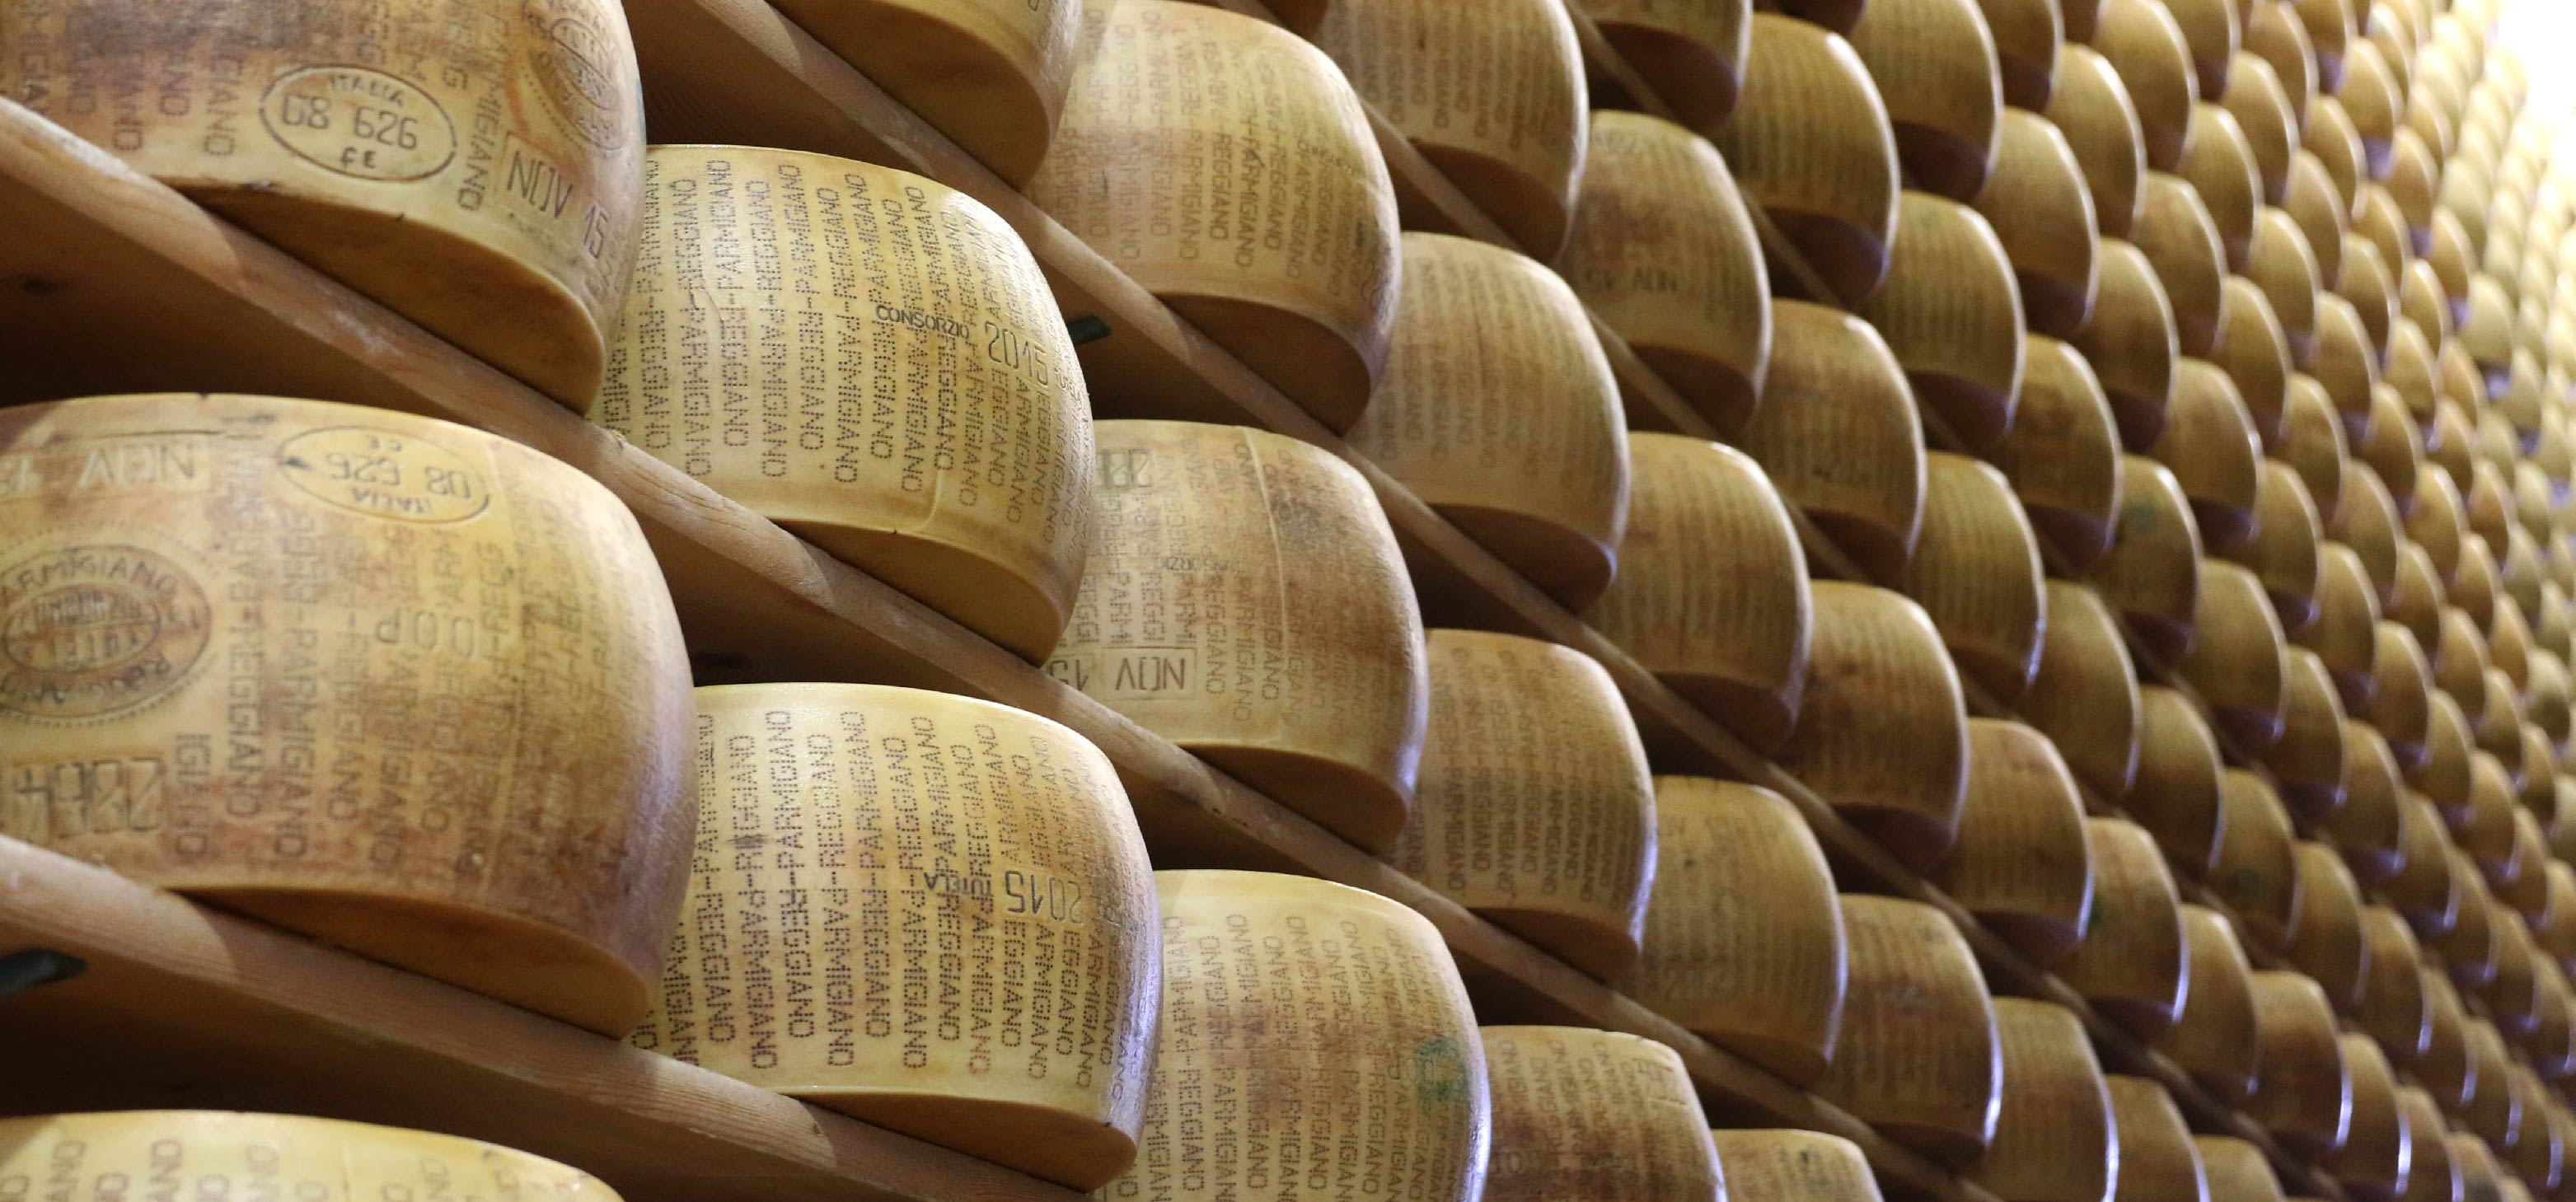 J'adore Fromage, I Love Cheese, July is French Month